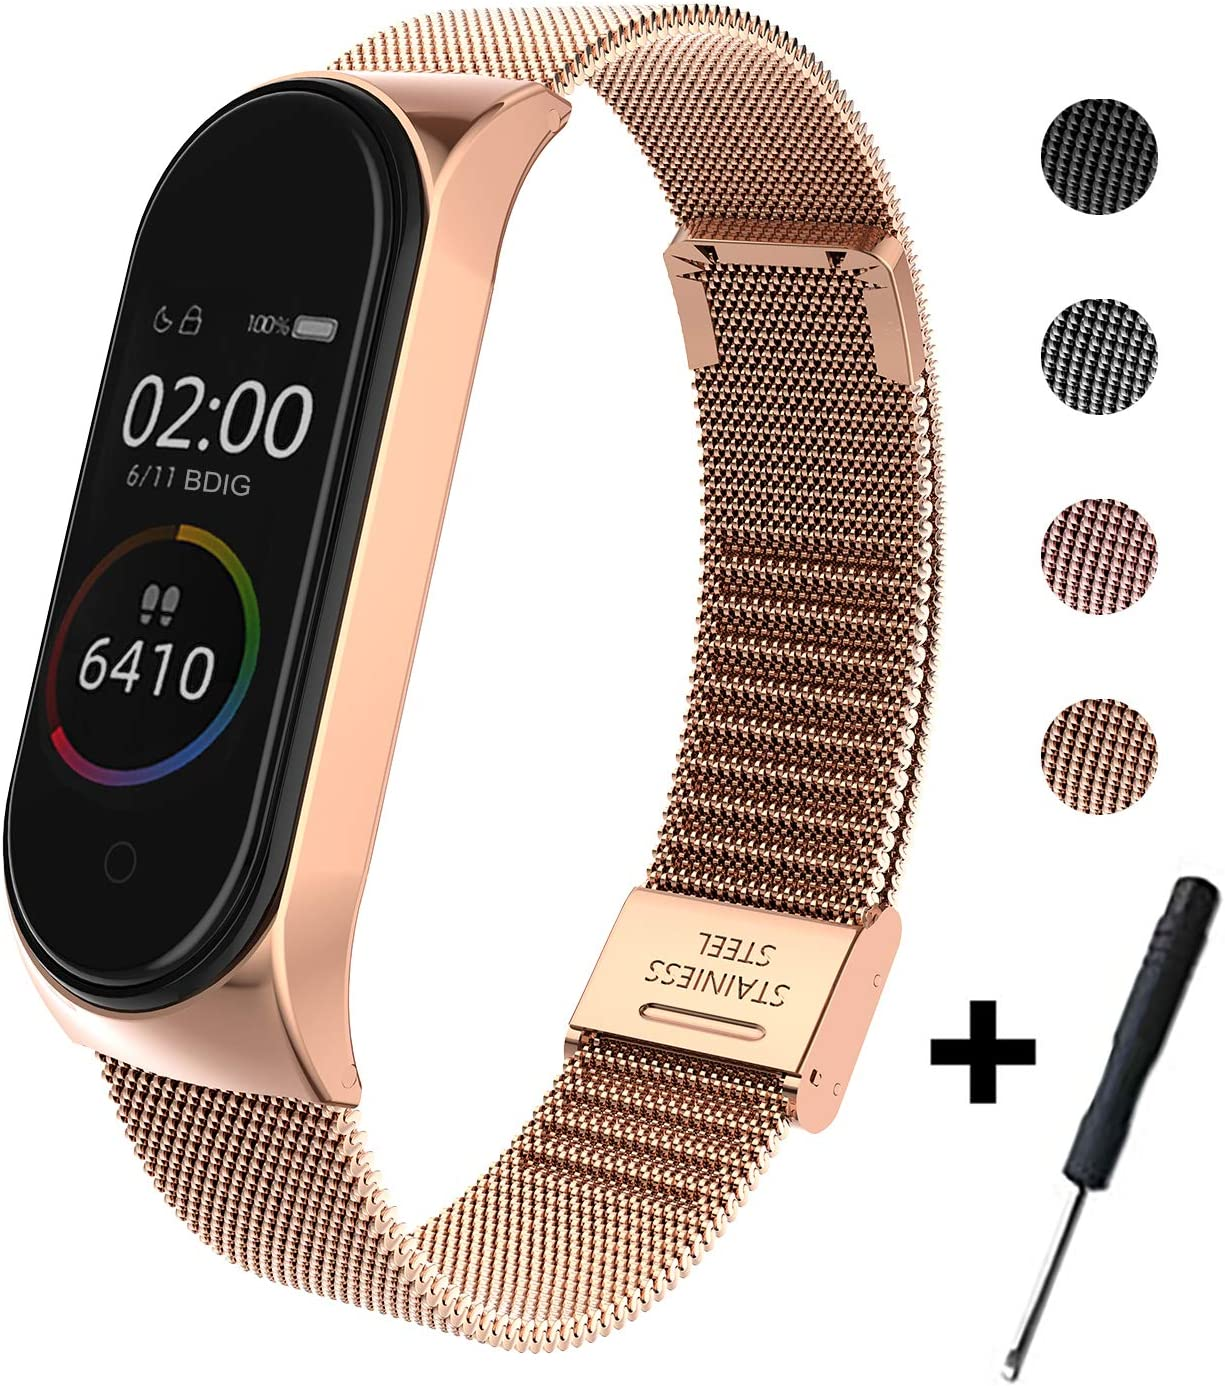 BDIG Correa Compatible Xiaomi Mi Band 4 Correas Metal,Pulsera de Acero Inoxidable Agradable para Mi Band 4 Correa (No Host)